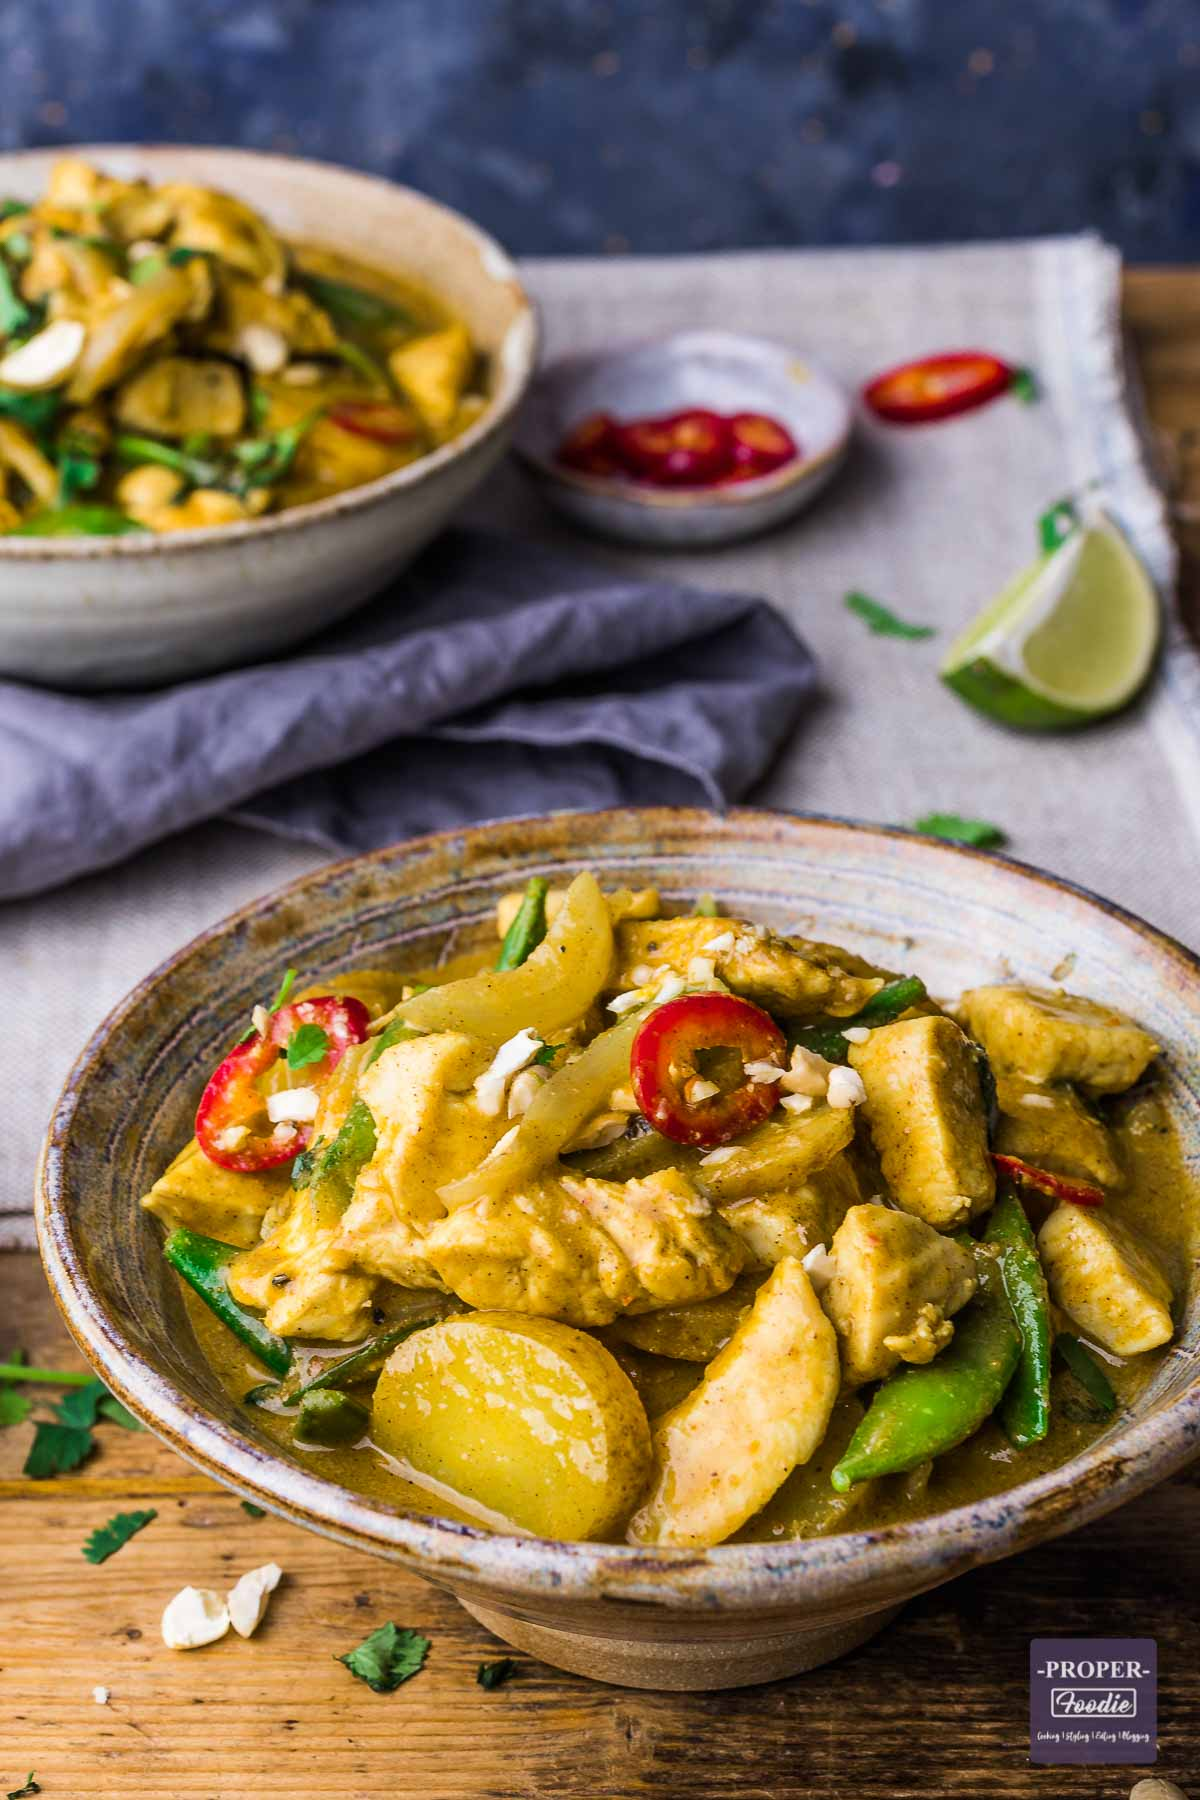 A bowl of Thai curry made with chicken, sliced potatoes and massaman curry sauce.